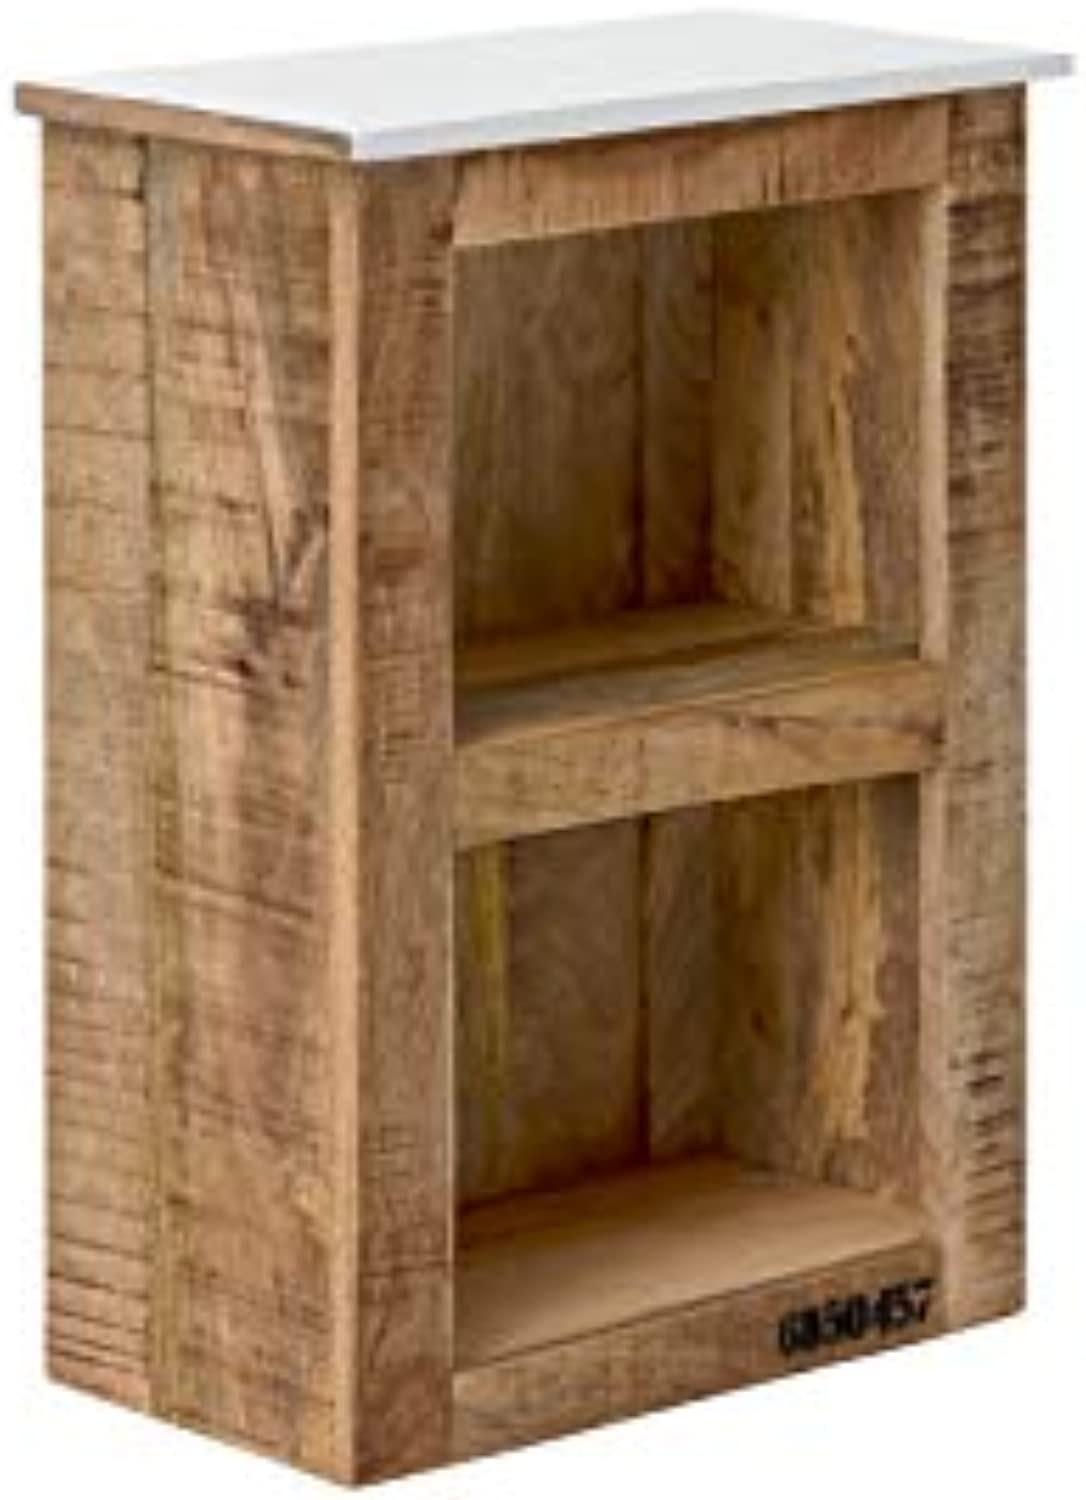 Woodkings Bad Bad Bad Hngeschrank Pune Holz Natur Wei